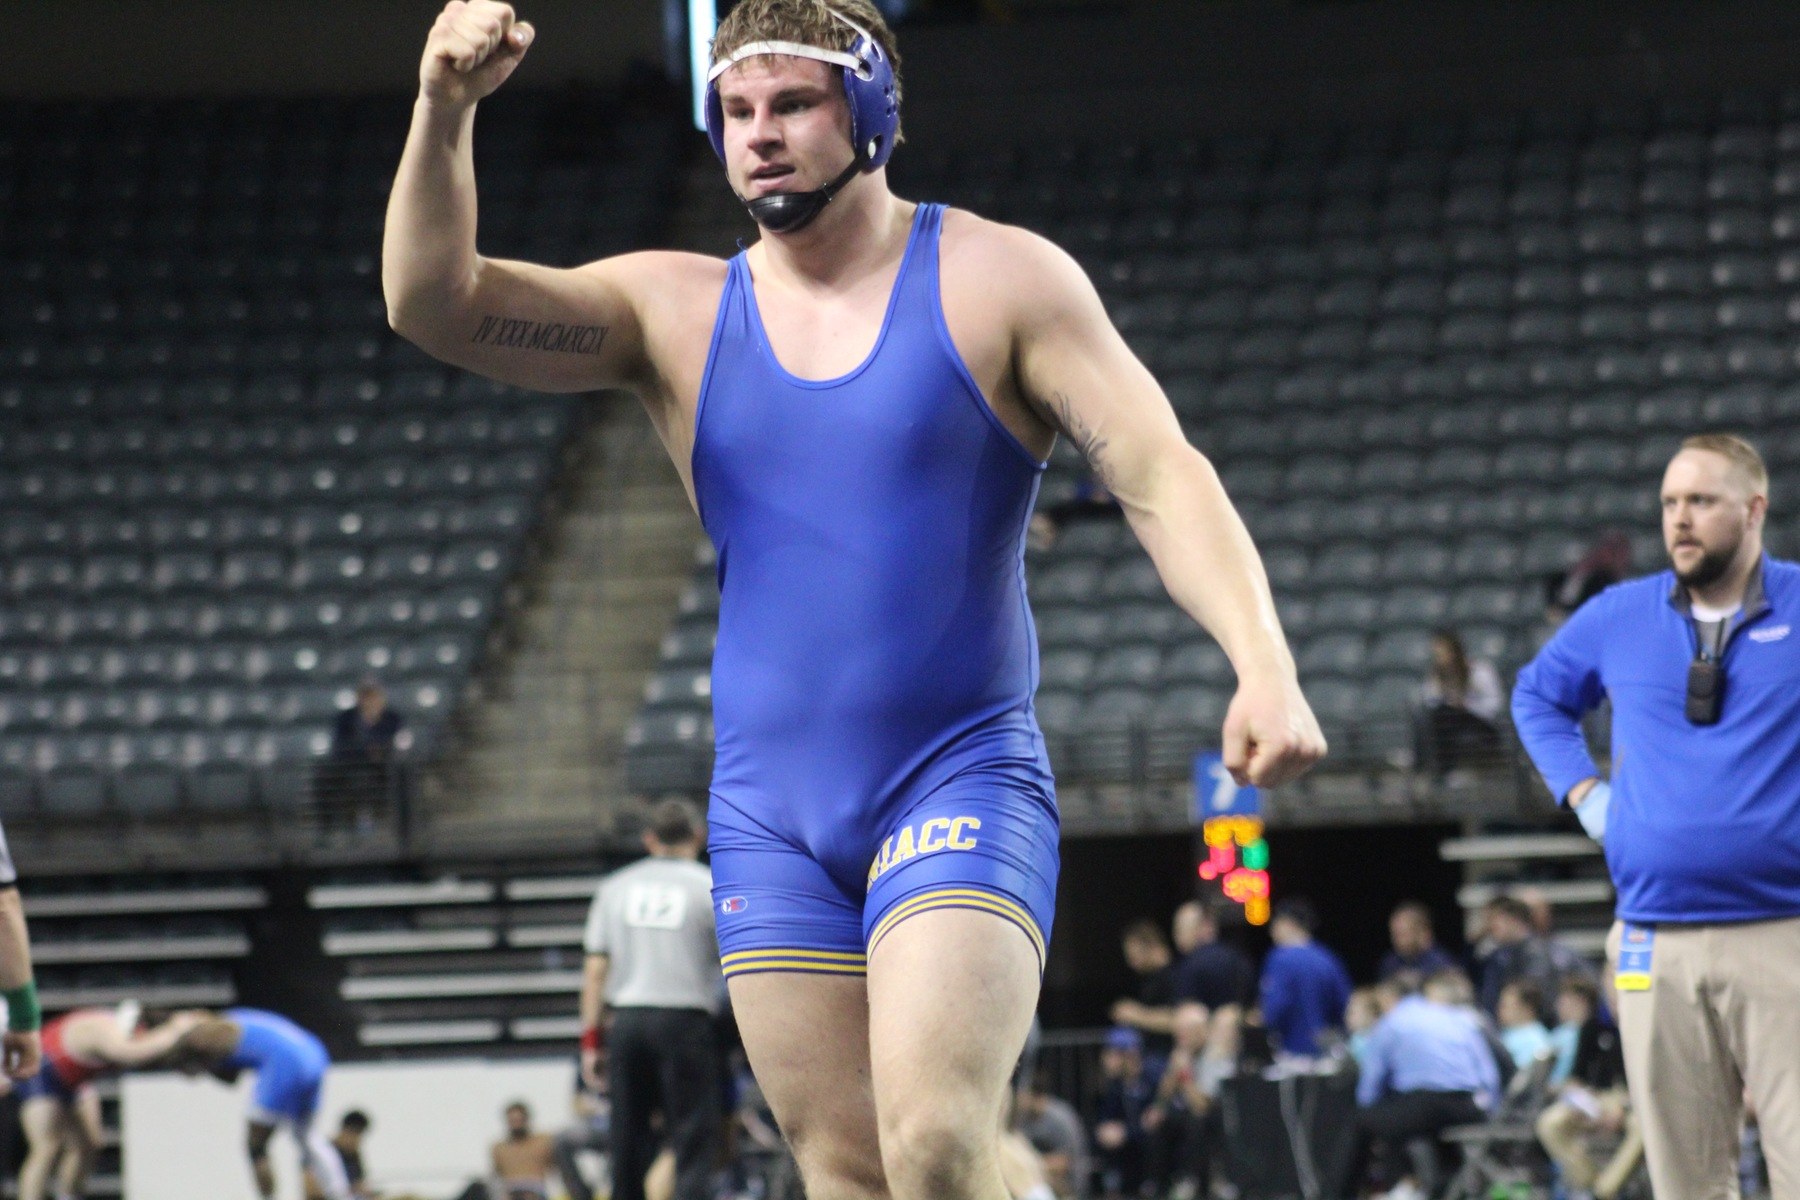 NIACC's Zach Santee celebrates his second-round pin at 285 pounds at the national wrestling tournament in Council Bluffs.